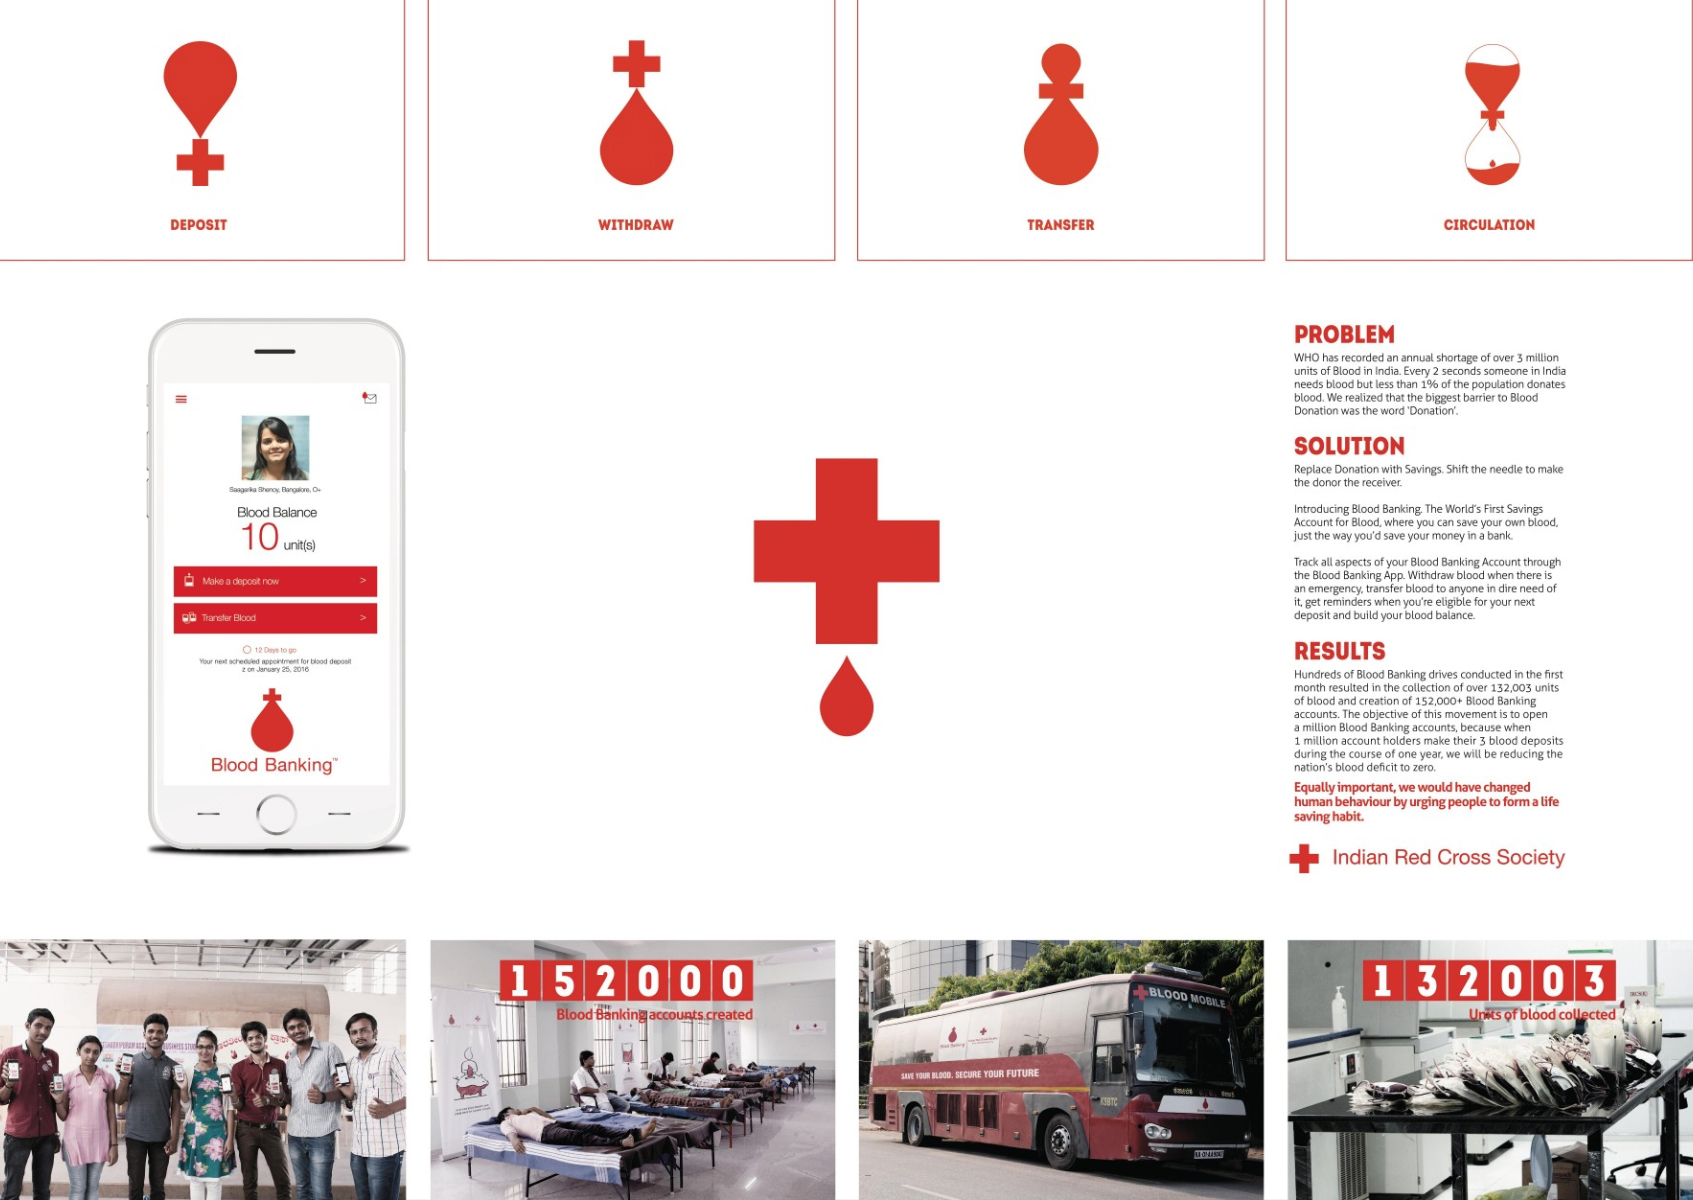 Indian red cross society blood banking adeevee for Blood bank planning and designing